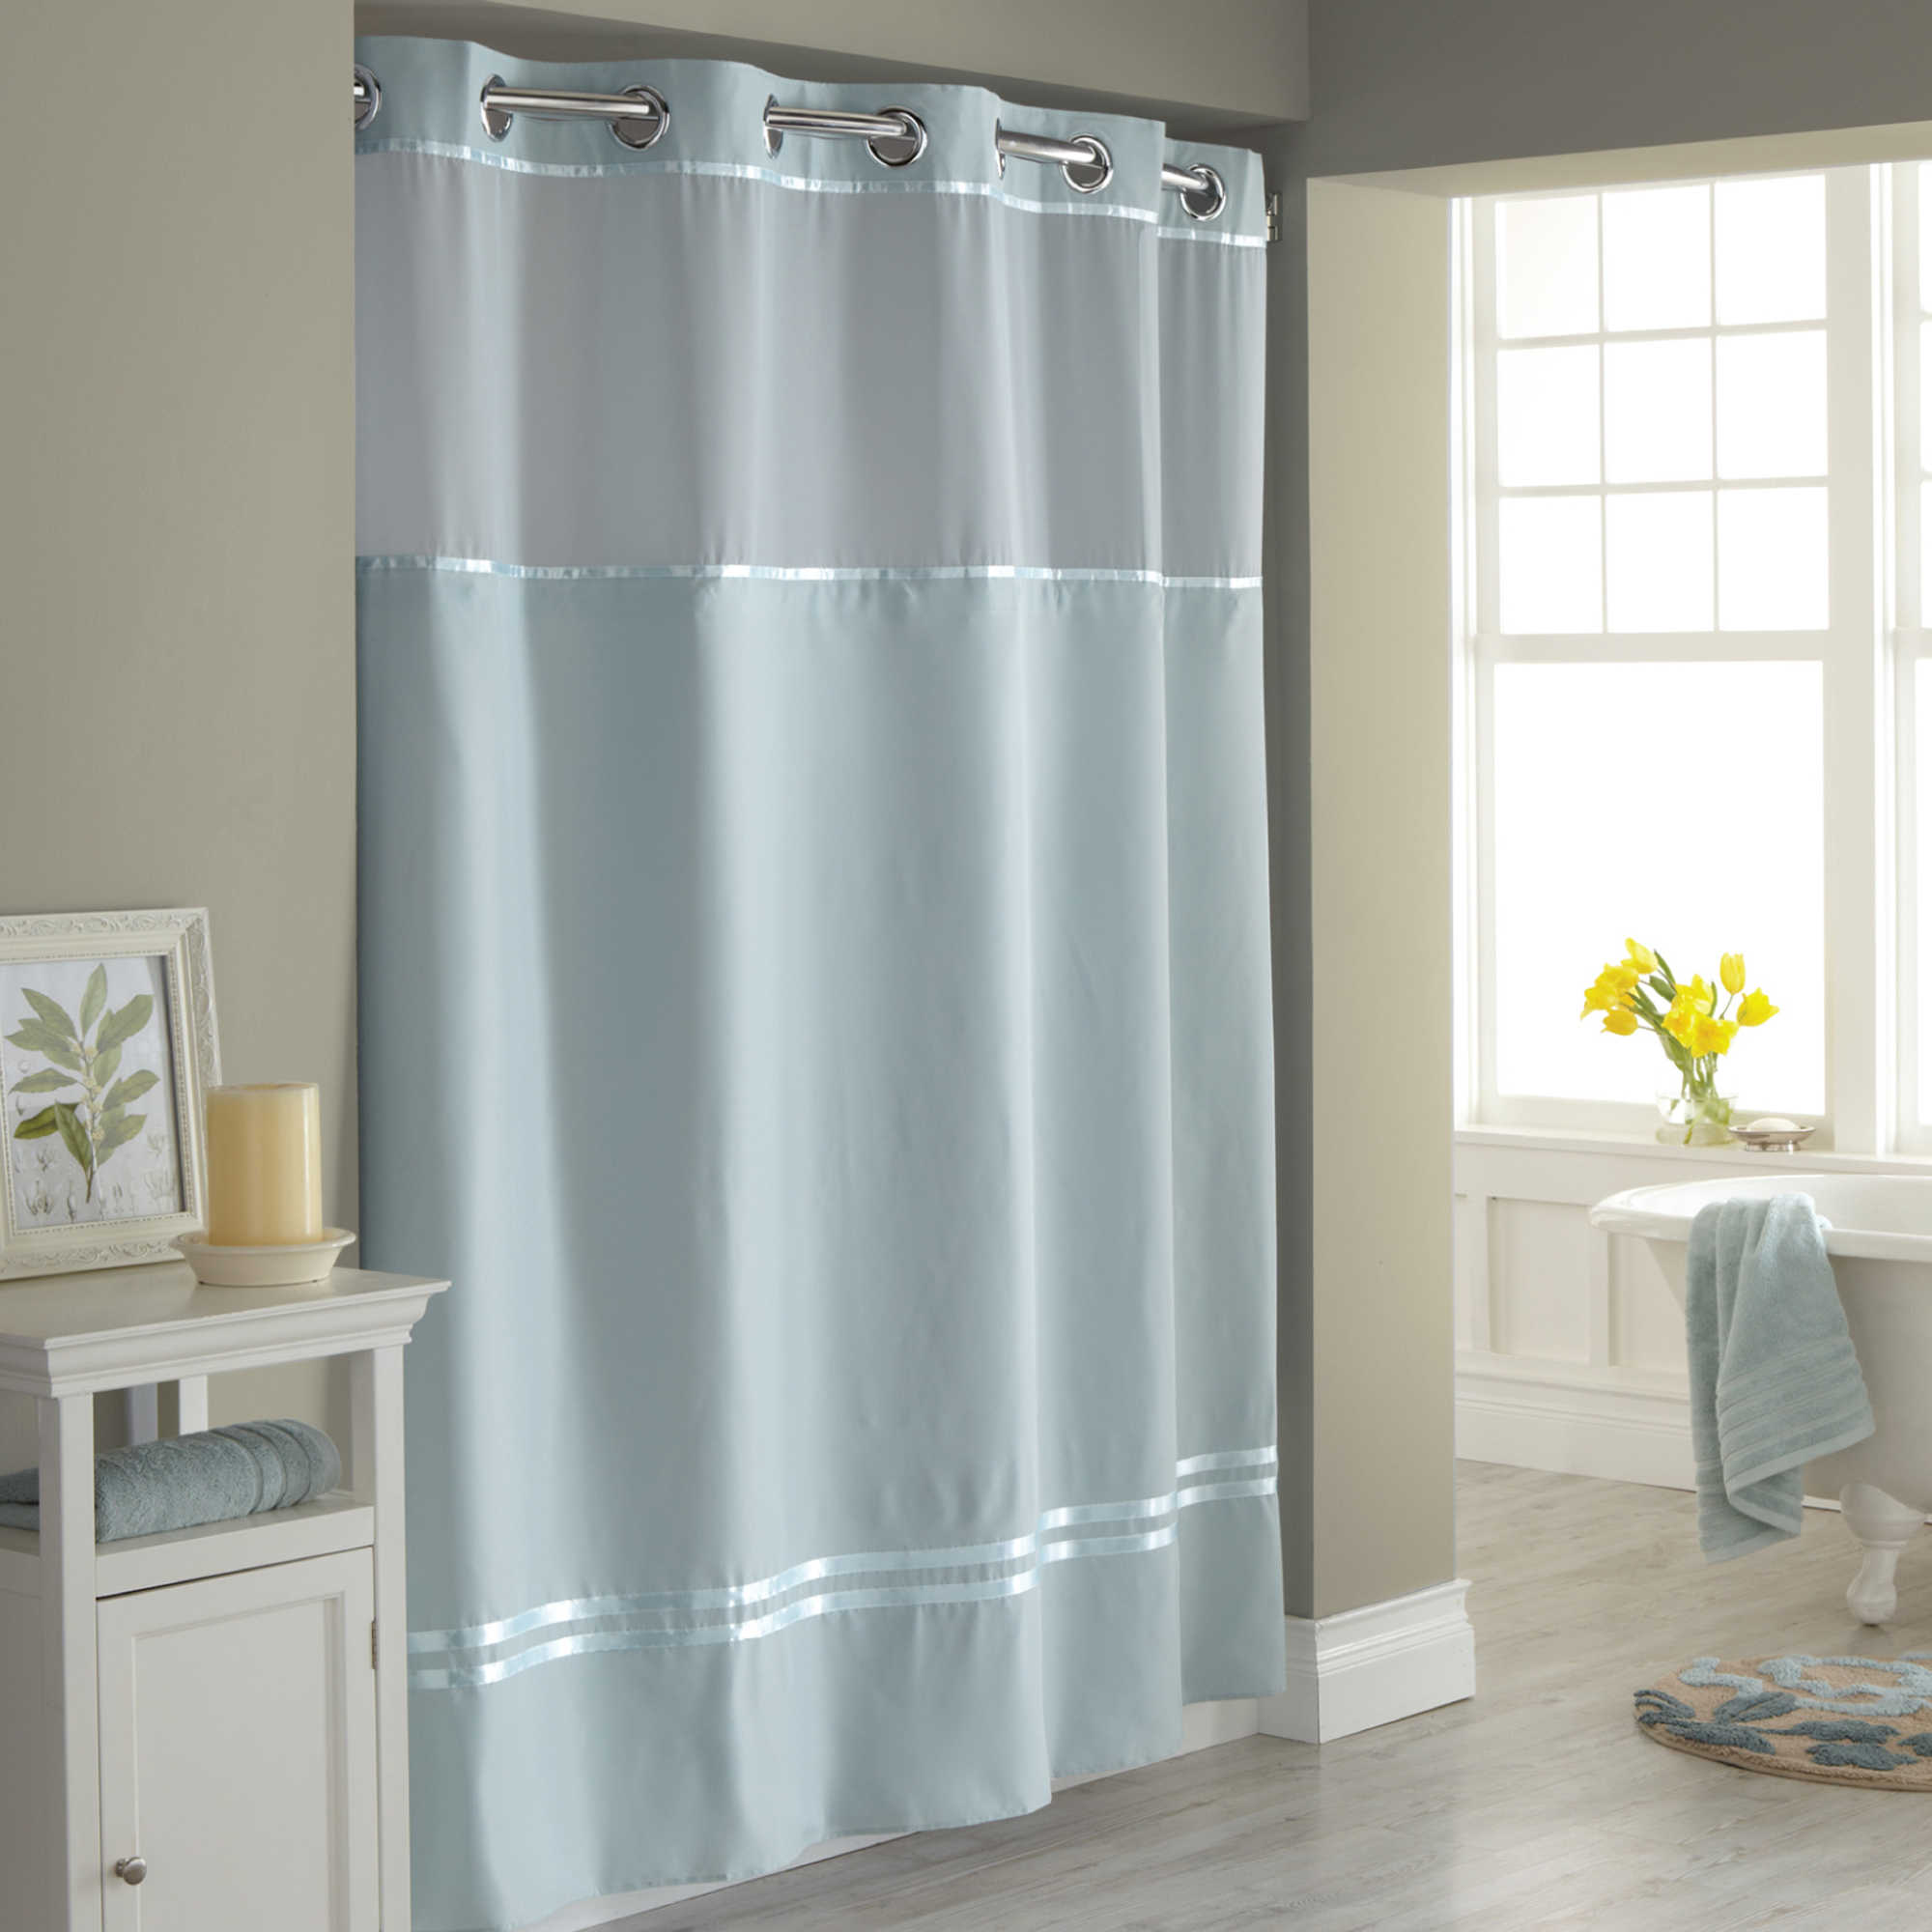 Teal Shower Curtain - Hookless reg escape fabric shower curtain and shower curtain liner set